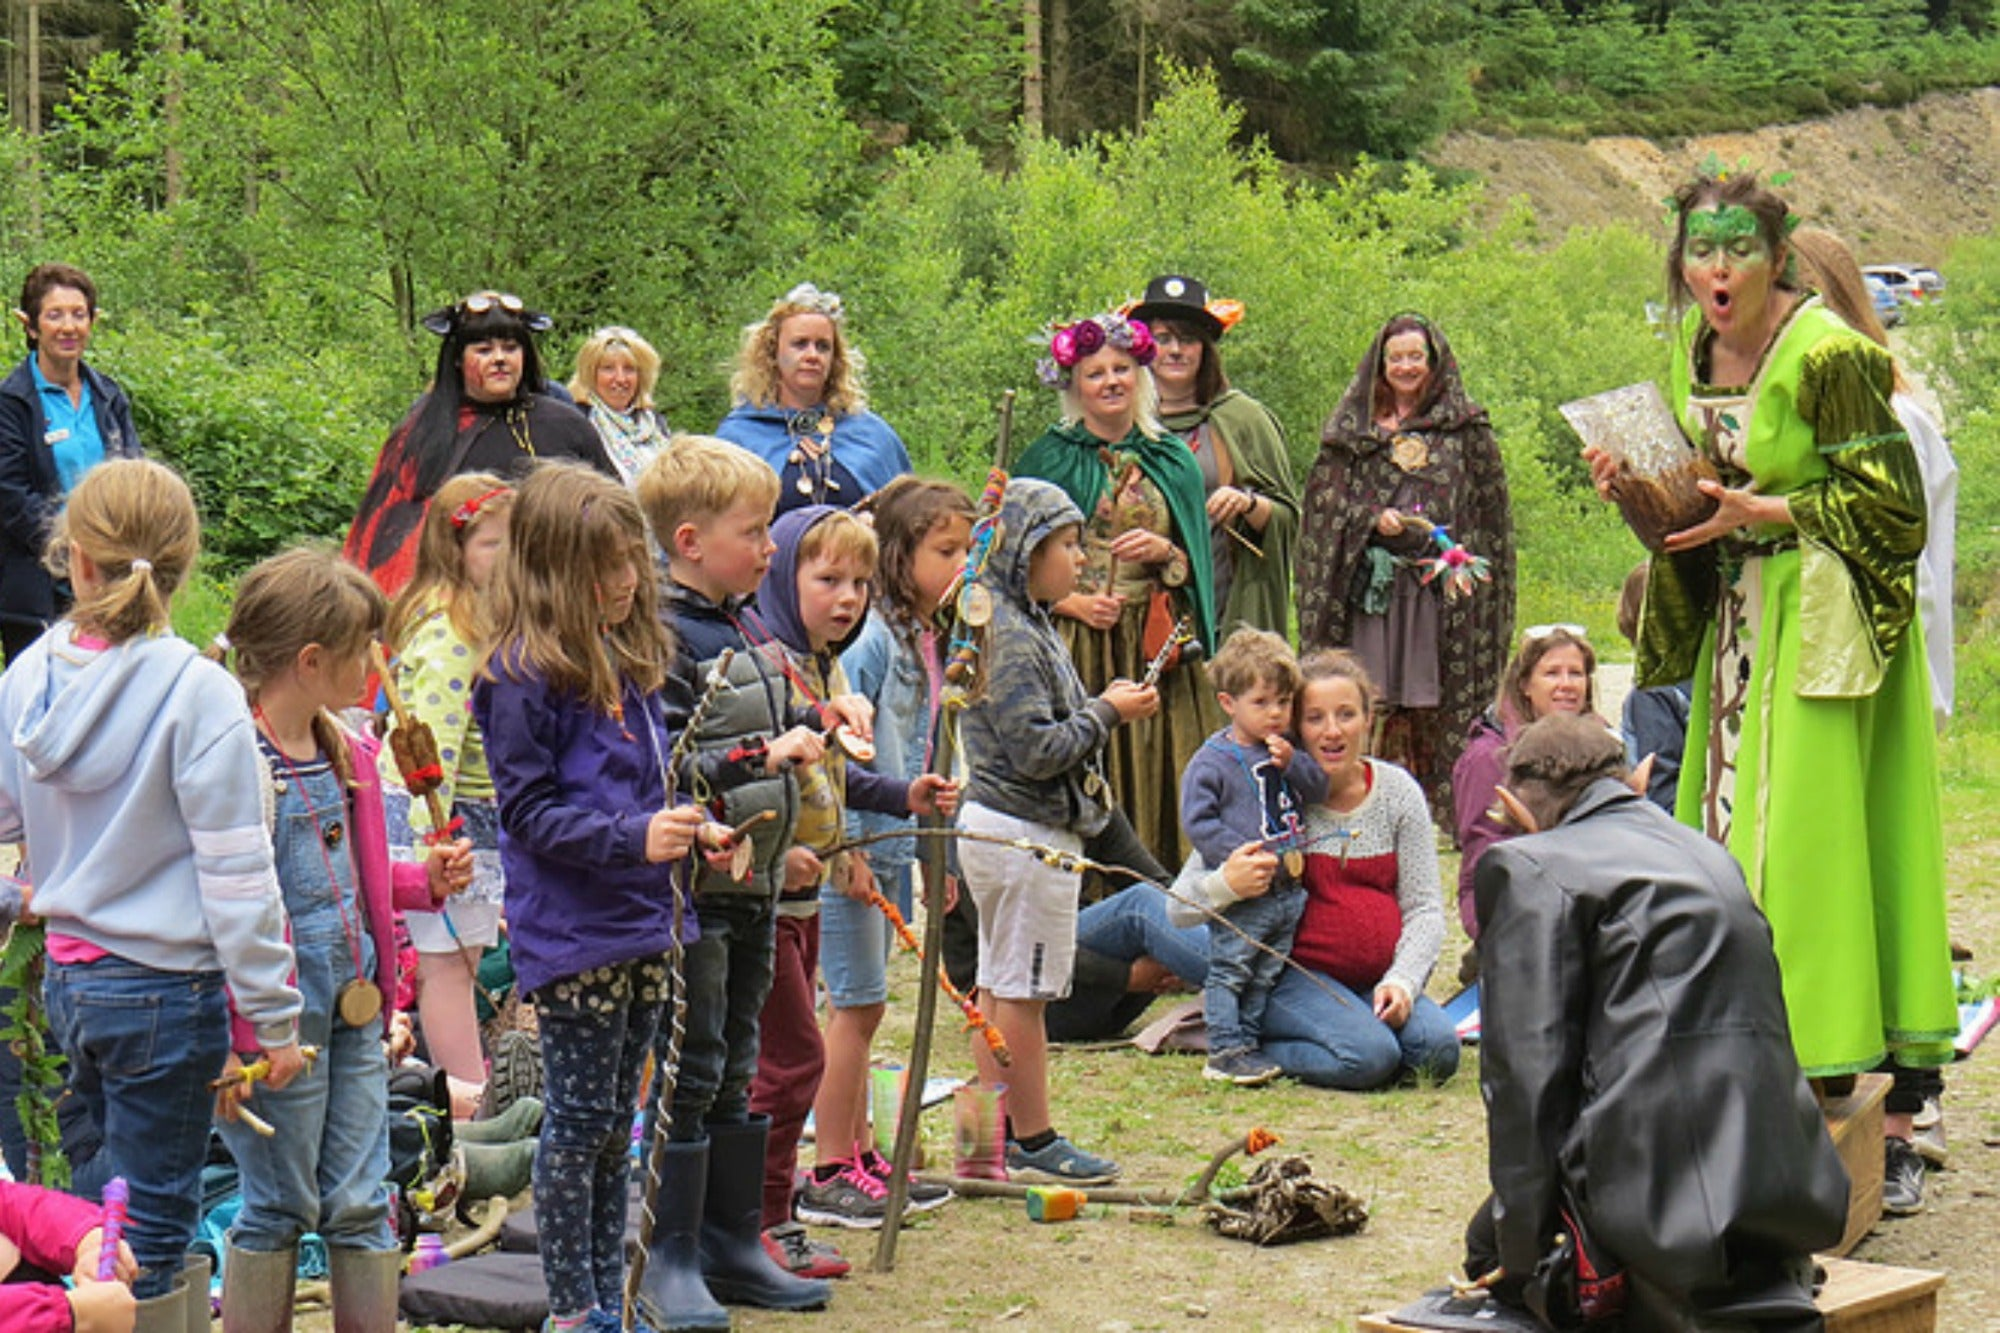 Real Life: Storytelling, Sustainability And Outdoor Crafts At MythFest